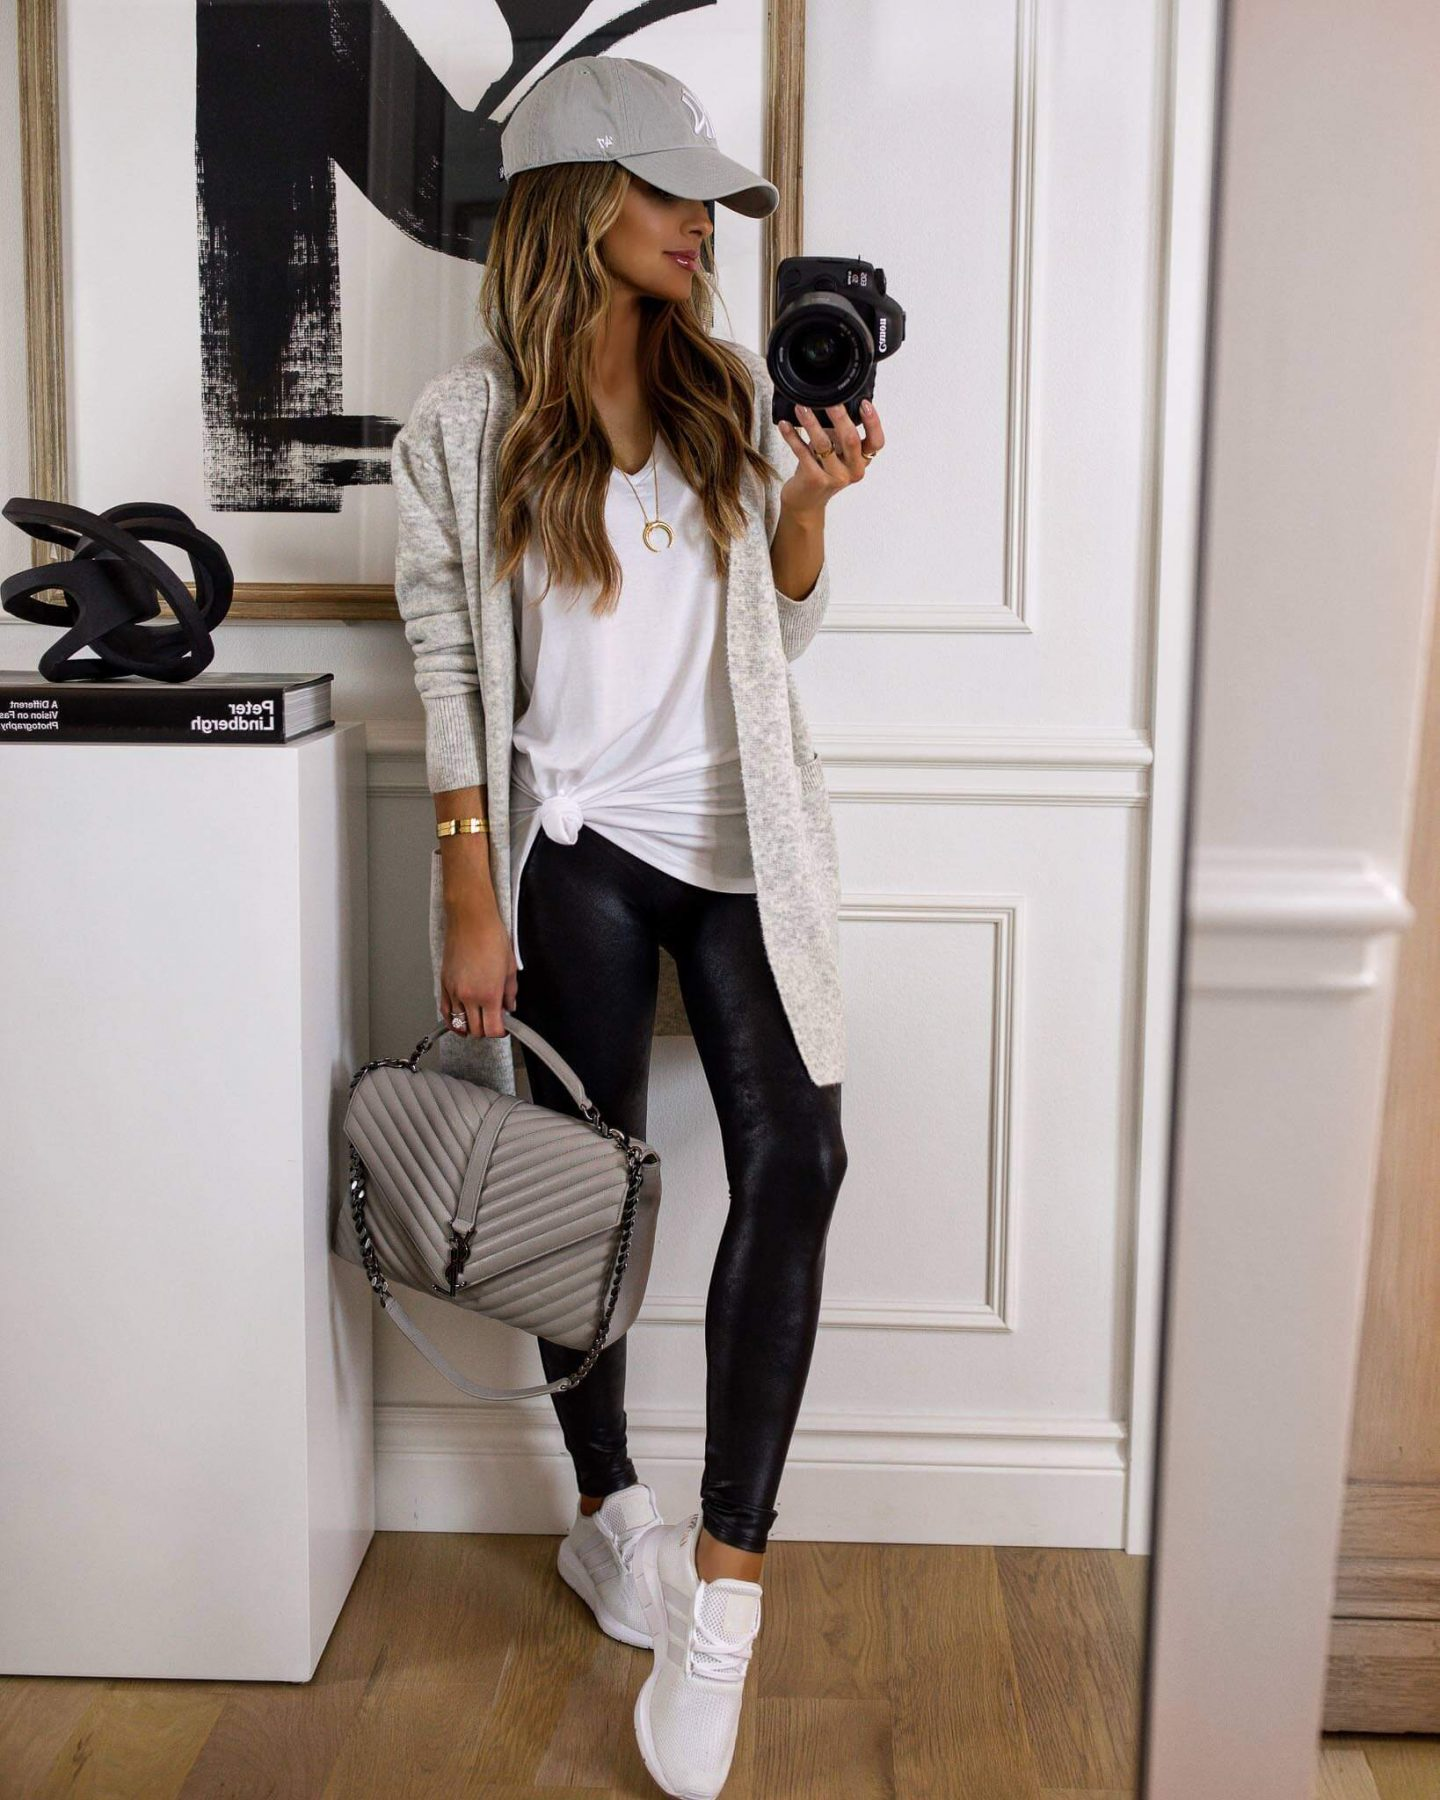 leggings and long cardigan and white sneakers